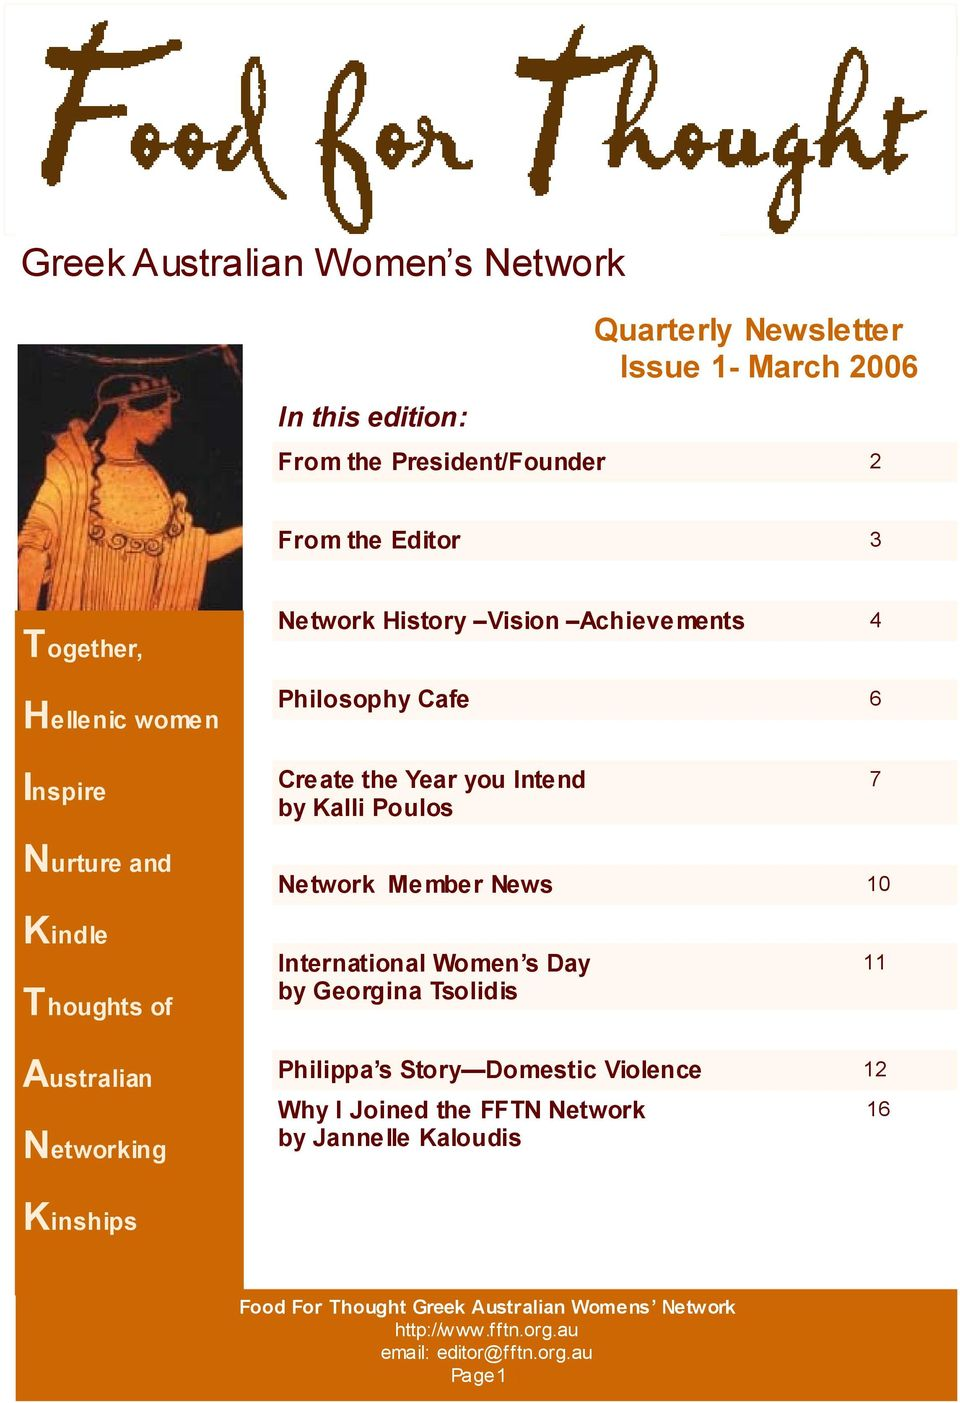 Intend by Kalli Poulos 7 Nurture and Network Member News 10 Kindle Thoughts of International Women s Day by Georgina Tsolidis